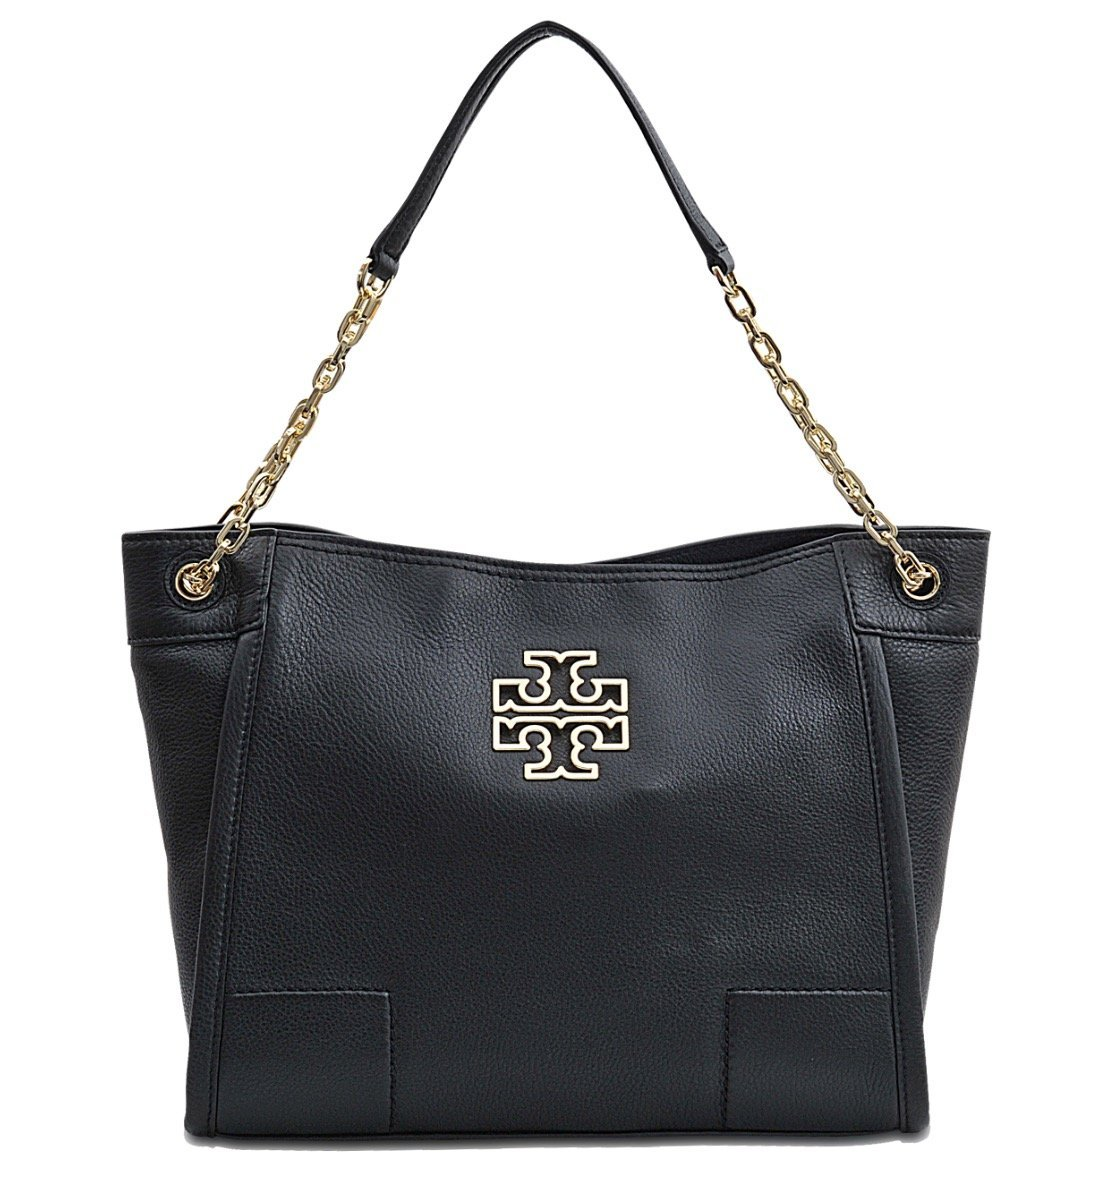 Tory Burch Britten Small Slouchy Tote Bag In Black Style 39057 by Tory Burch